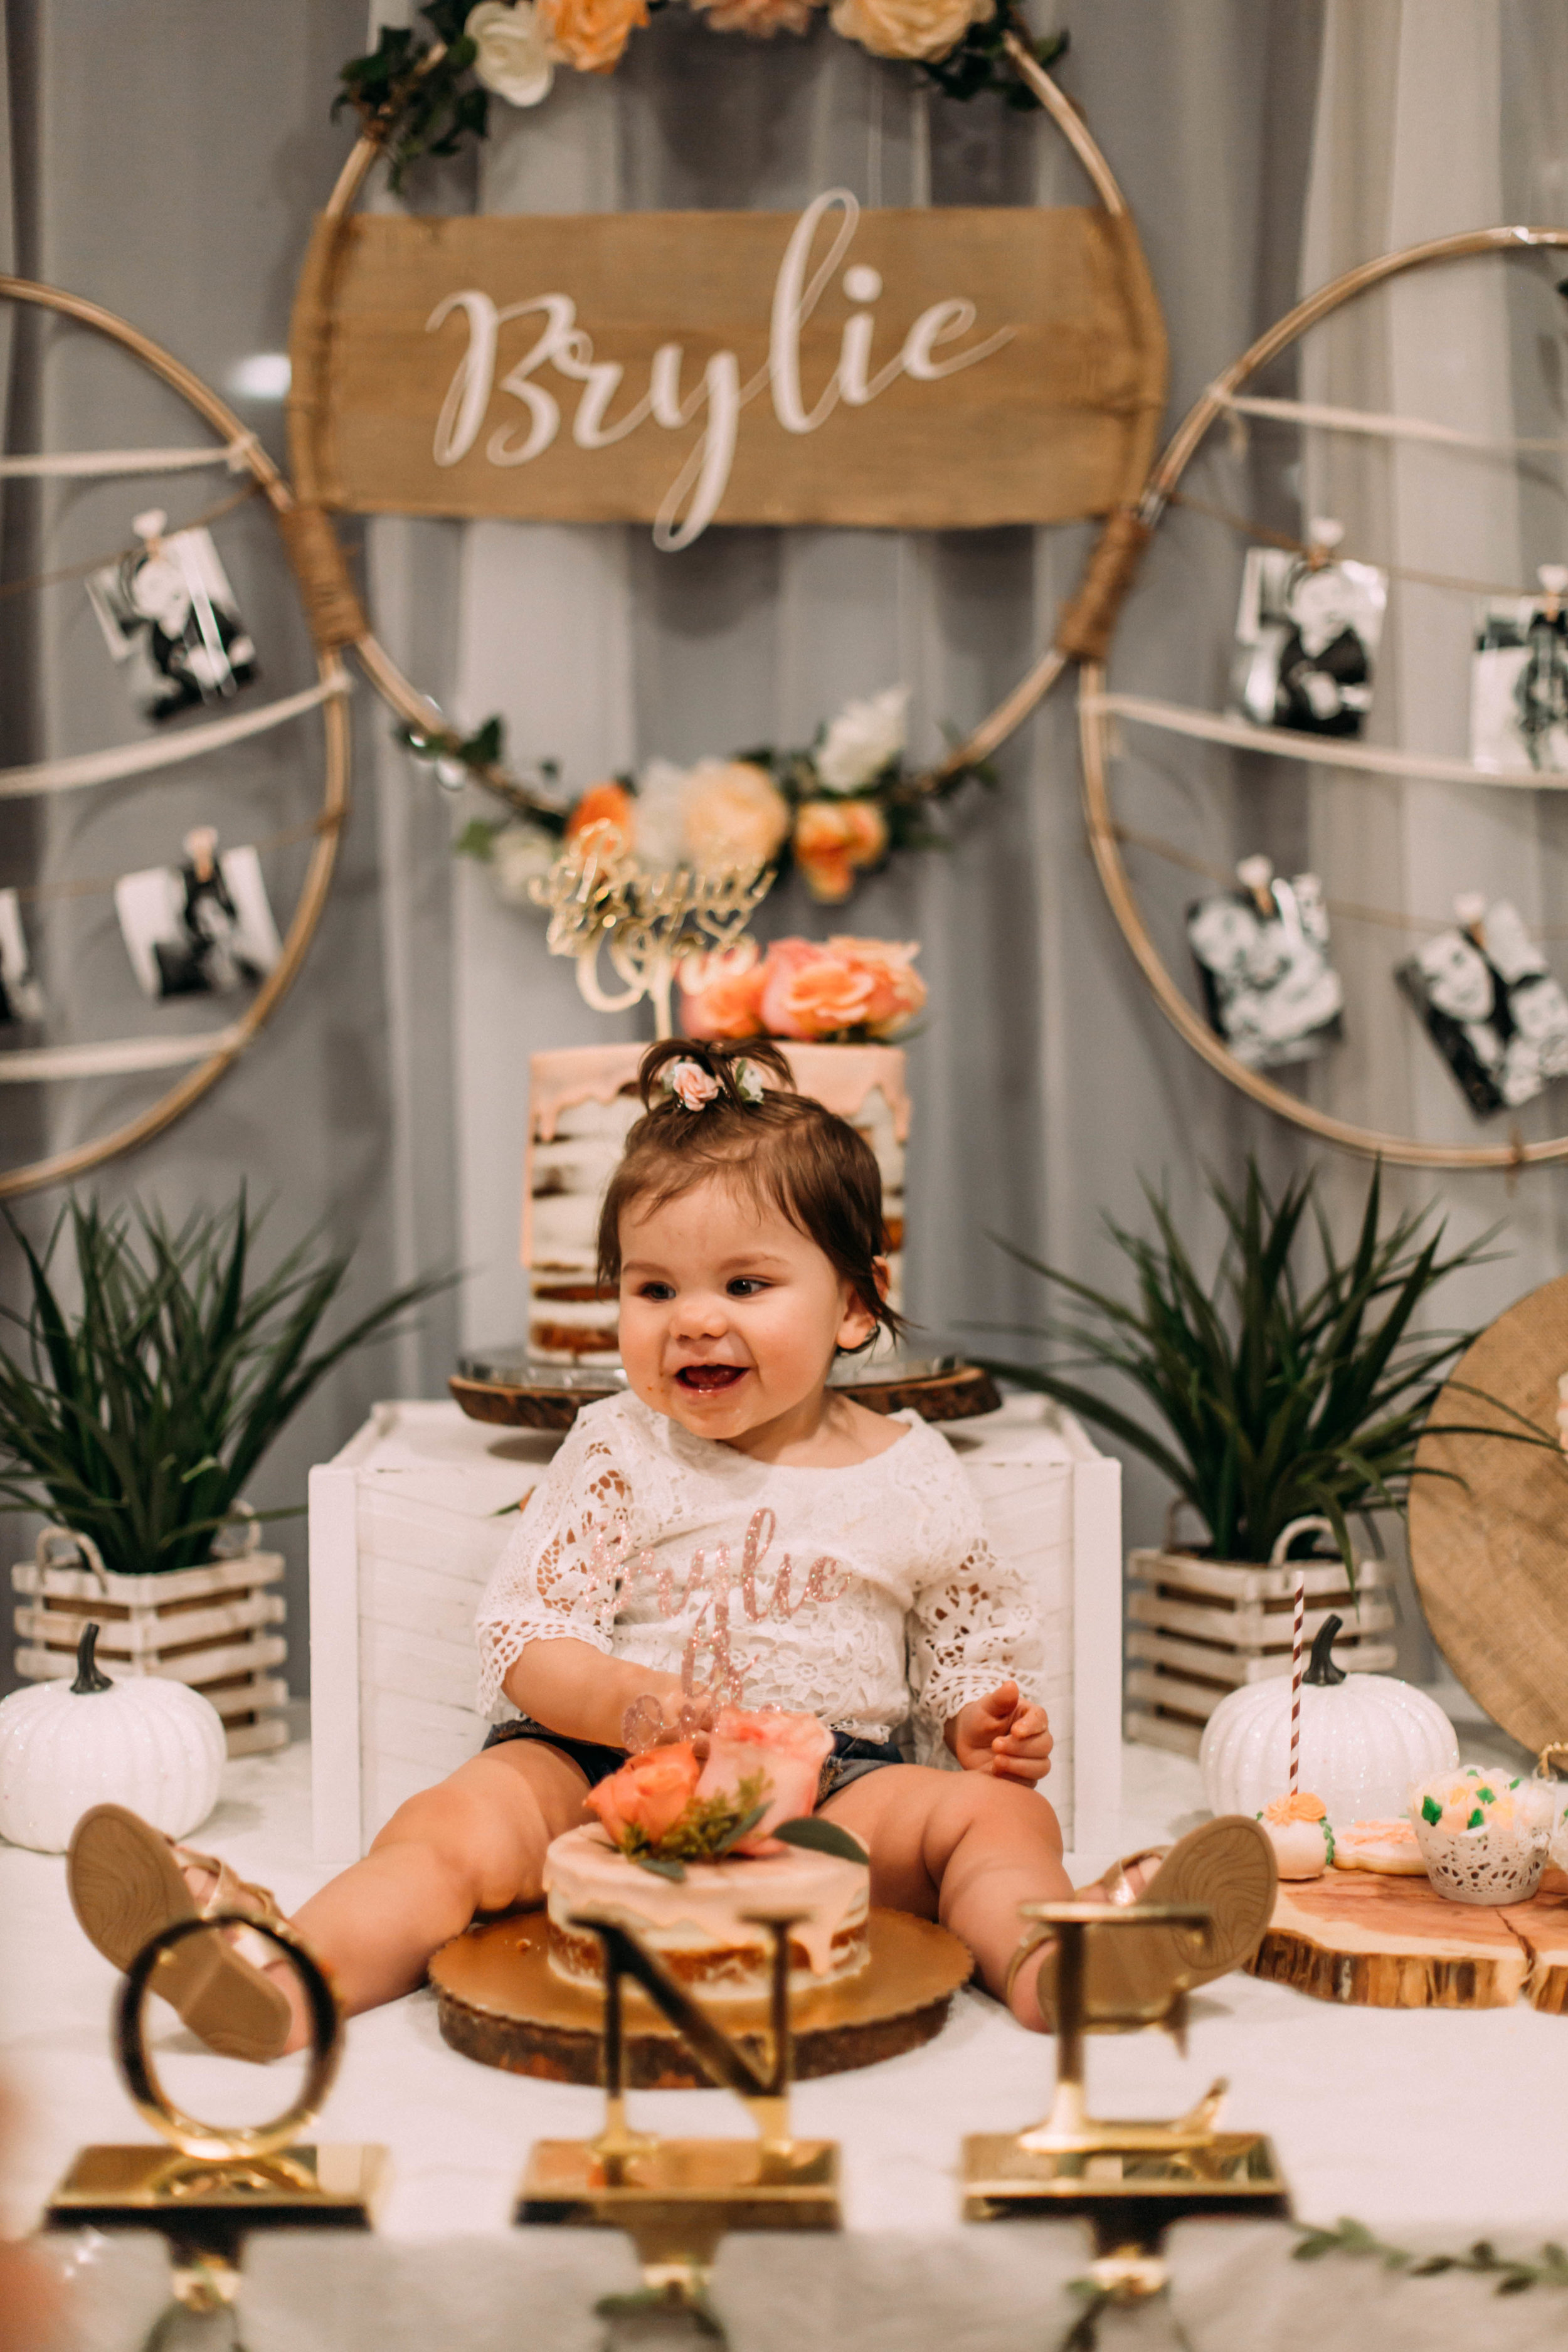 Brylie's 1st Birthday Party-107.jpg